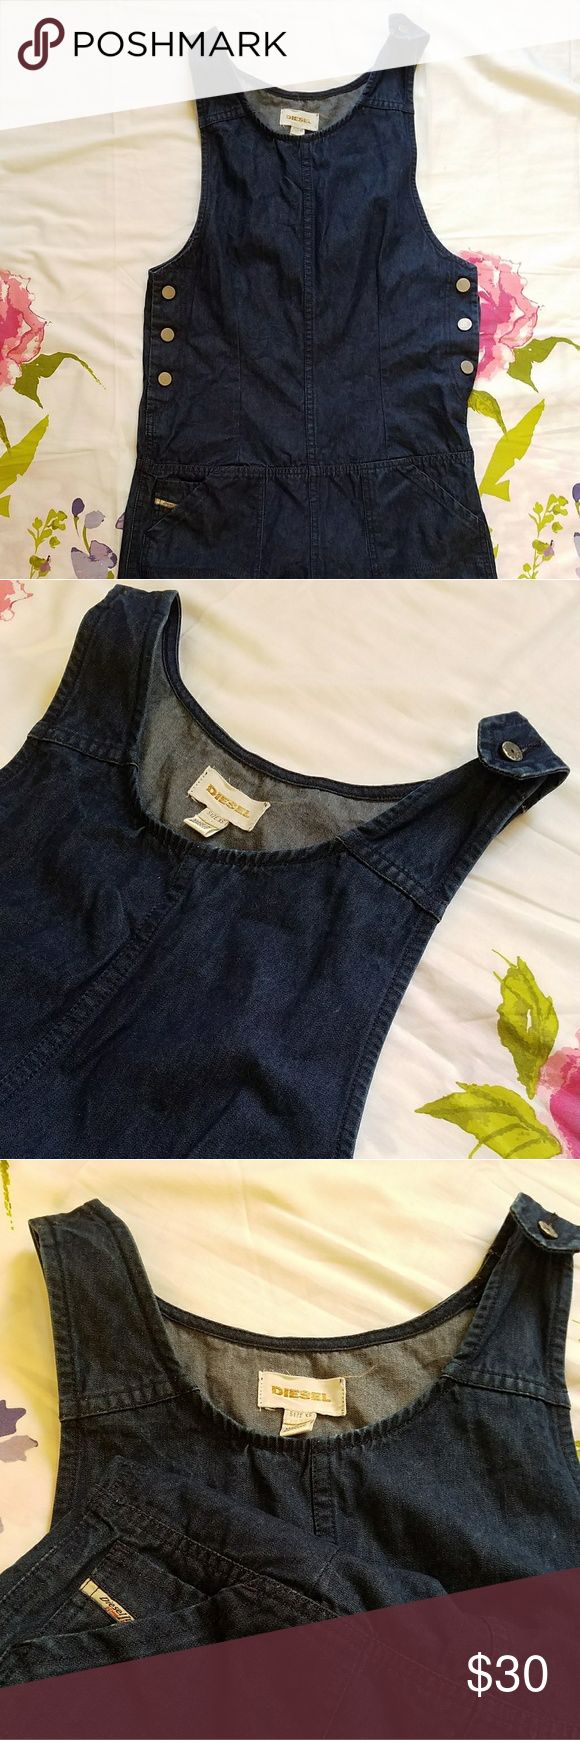 DIESEL Coverall Shorts Dark blue wash, snap buttons along both sides, also one shoulder strap has a button. 2 front pockets. Would wear with a white tee underneath and a cute hat! Diesel Tops